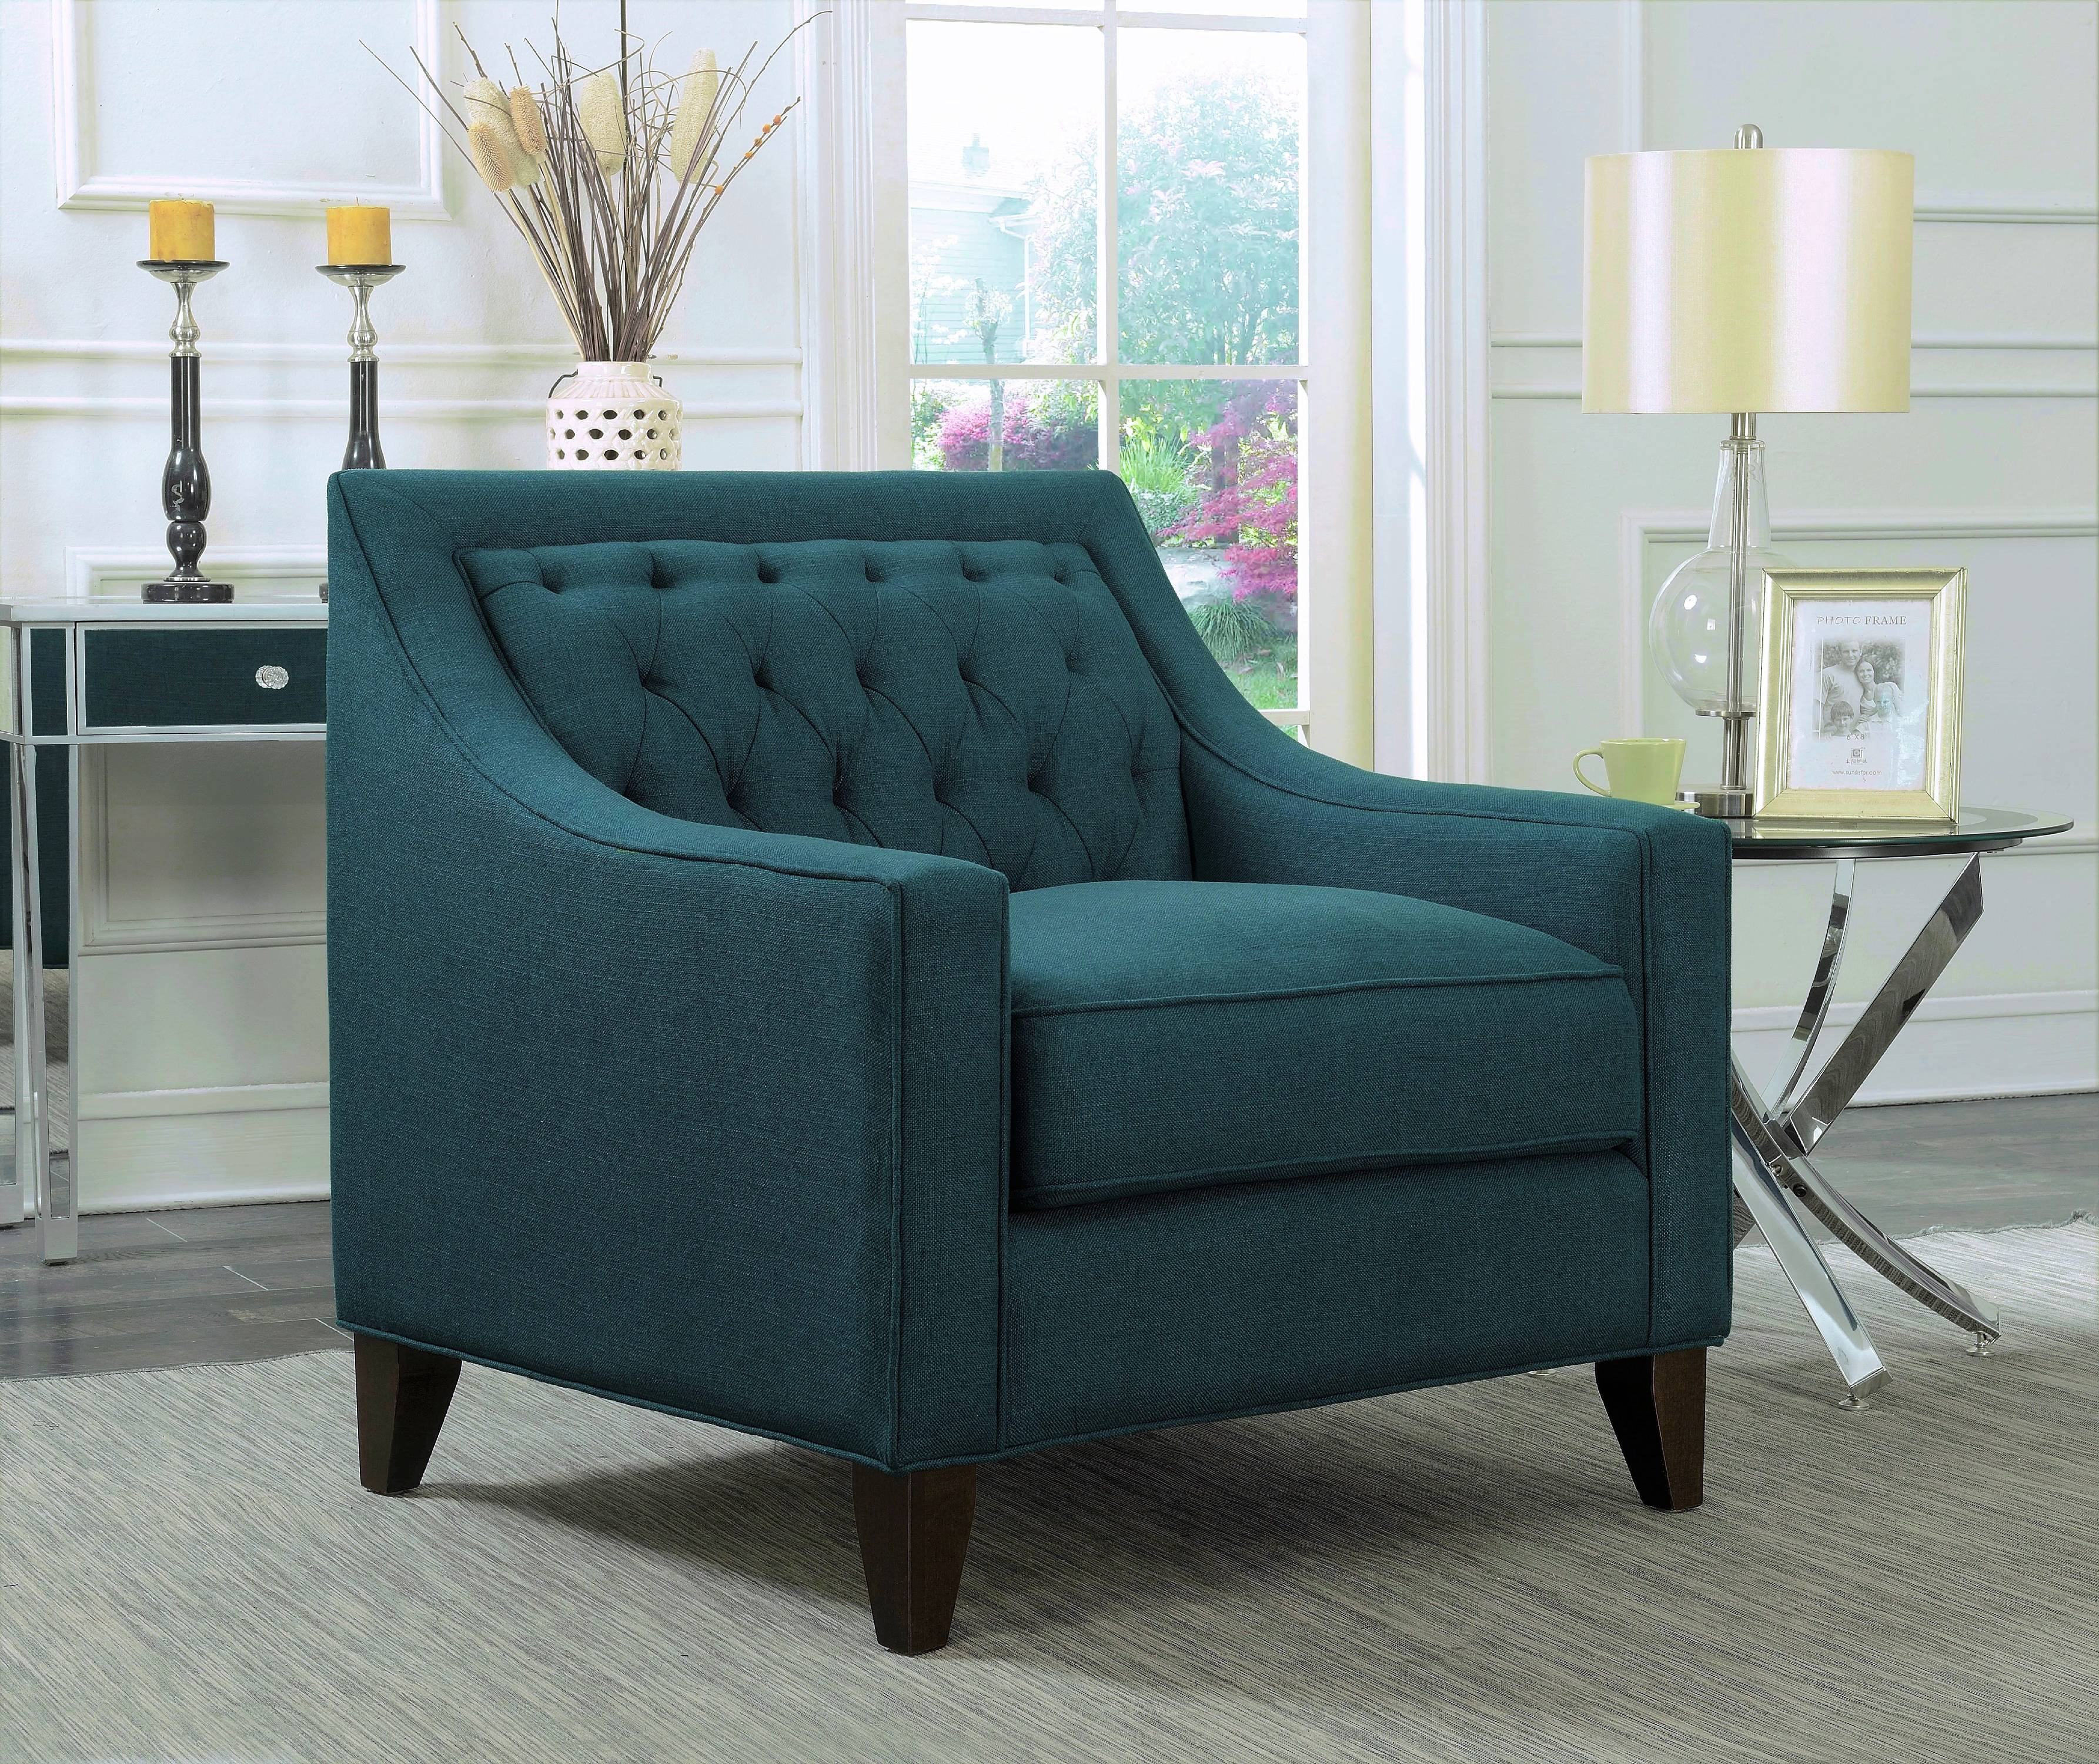 teal club chair webbed lawn chairs chic home fulla linen tufted back rest modern contemporary walmart com